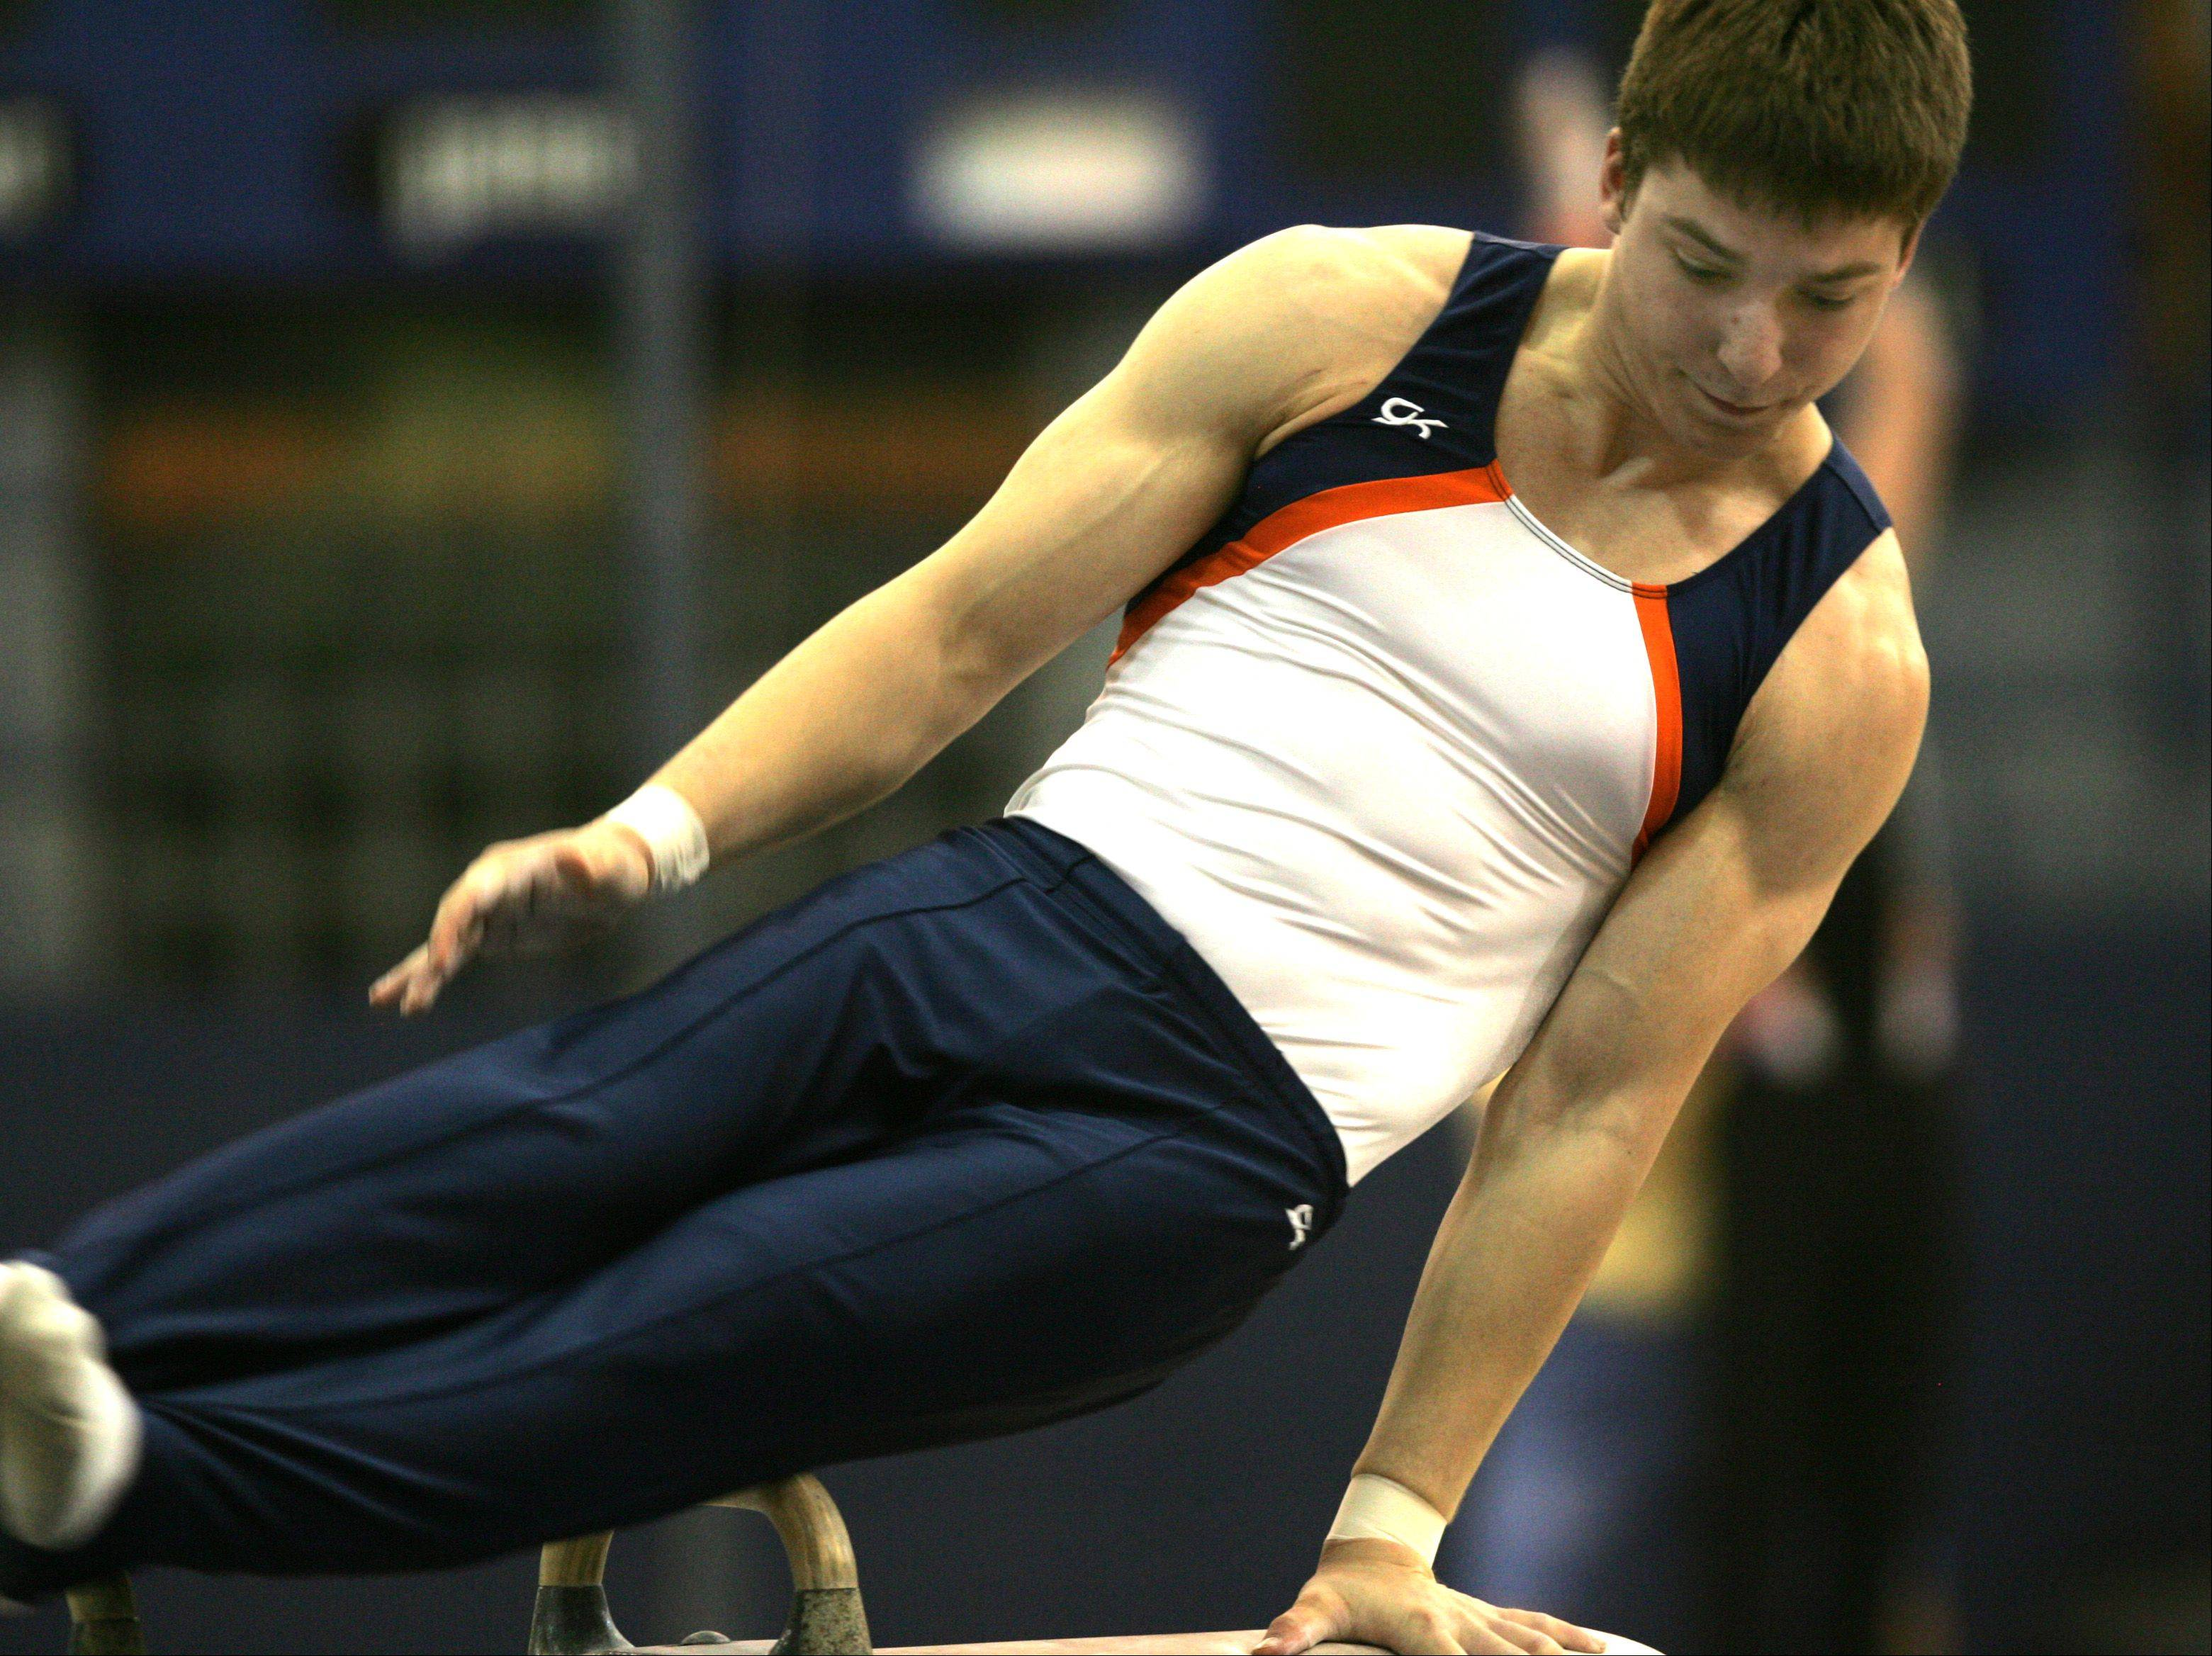 Naperville North's Billy Suta performs his pommel horse routine, during the Ralph Krupke Boys Gymnastics Invitational at Lake Park East High School.